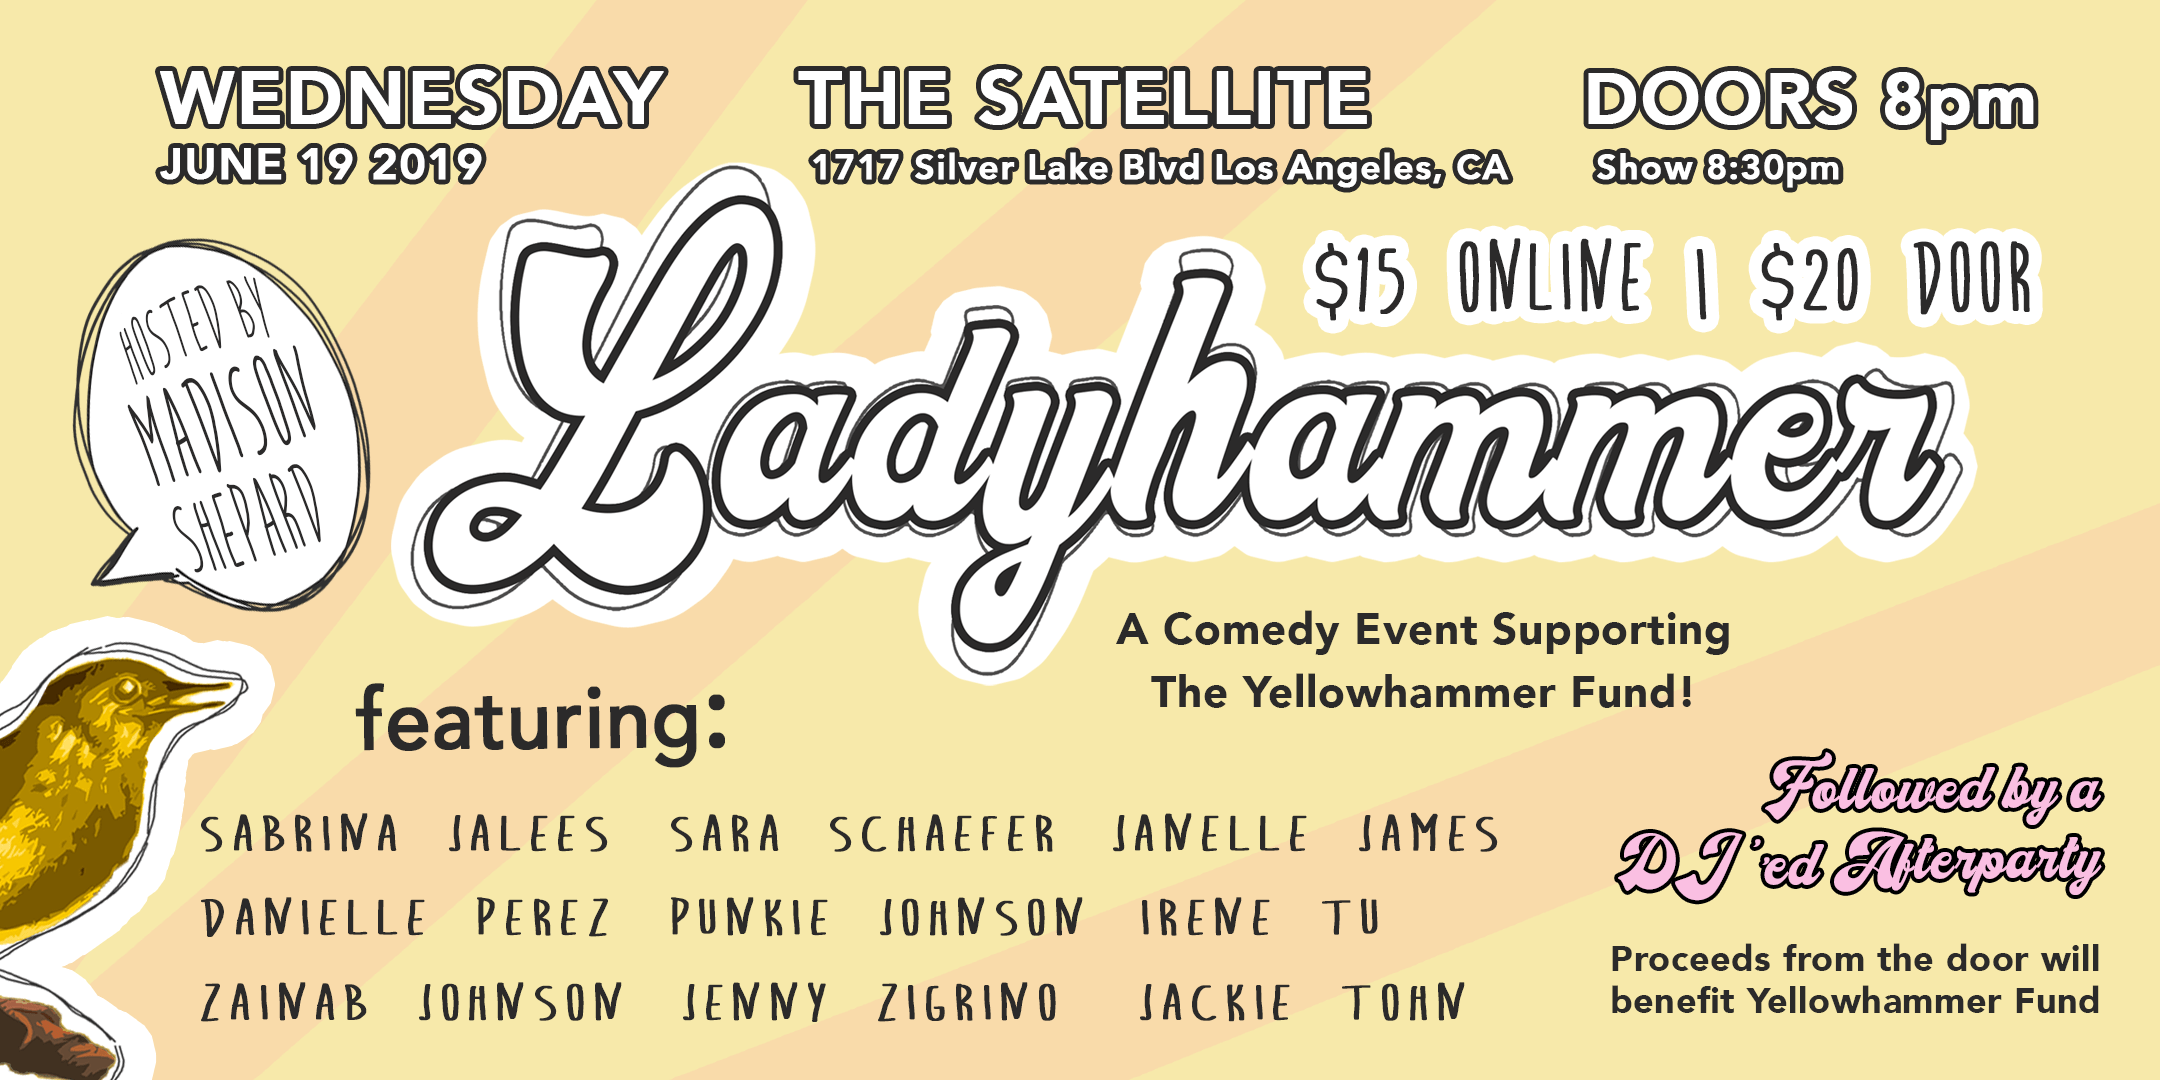 Ladyhammer: A Comedy Event in Support of The Yellowhammer Fund    → Event Producer